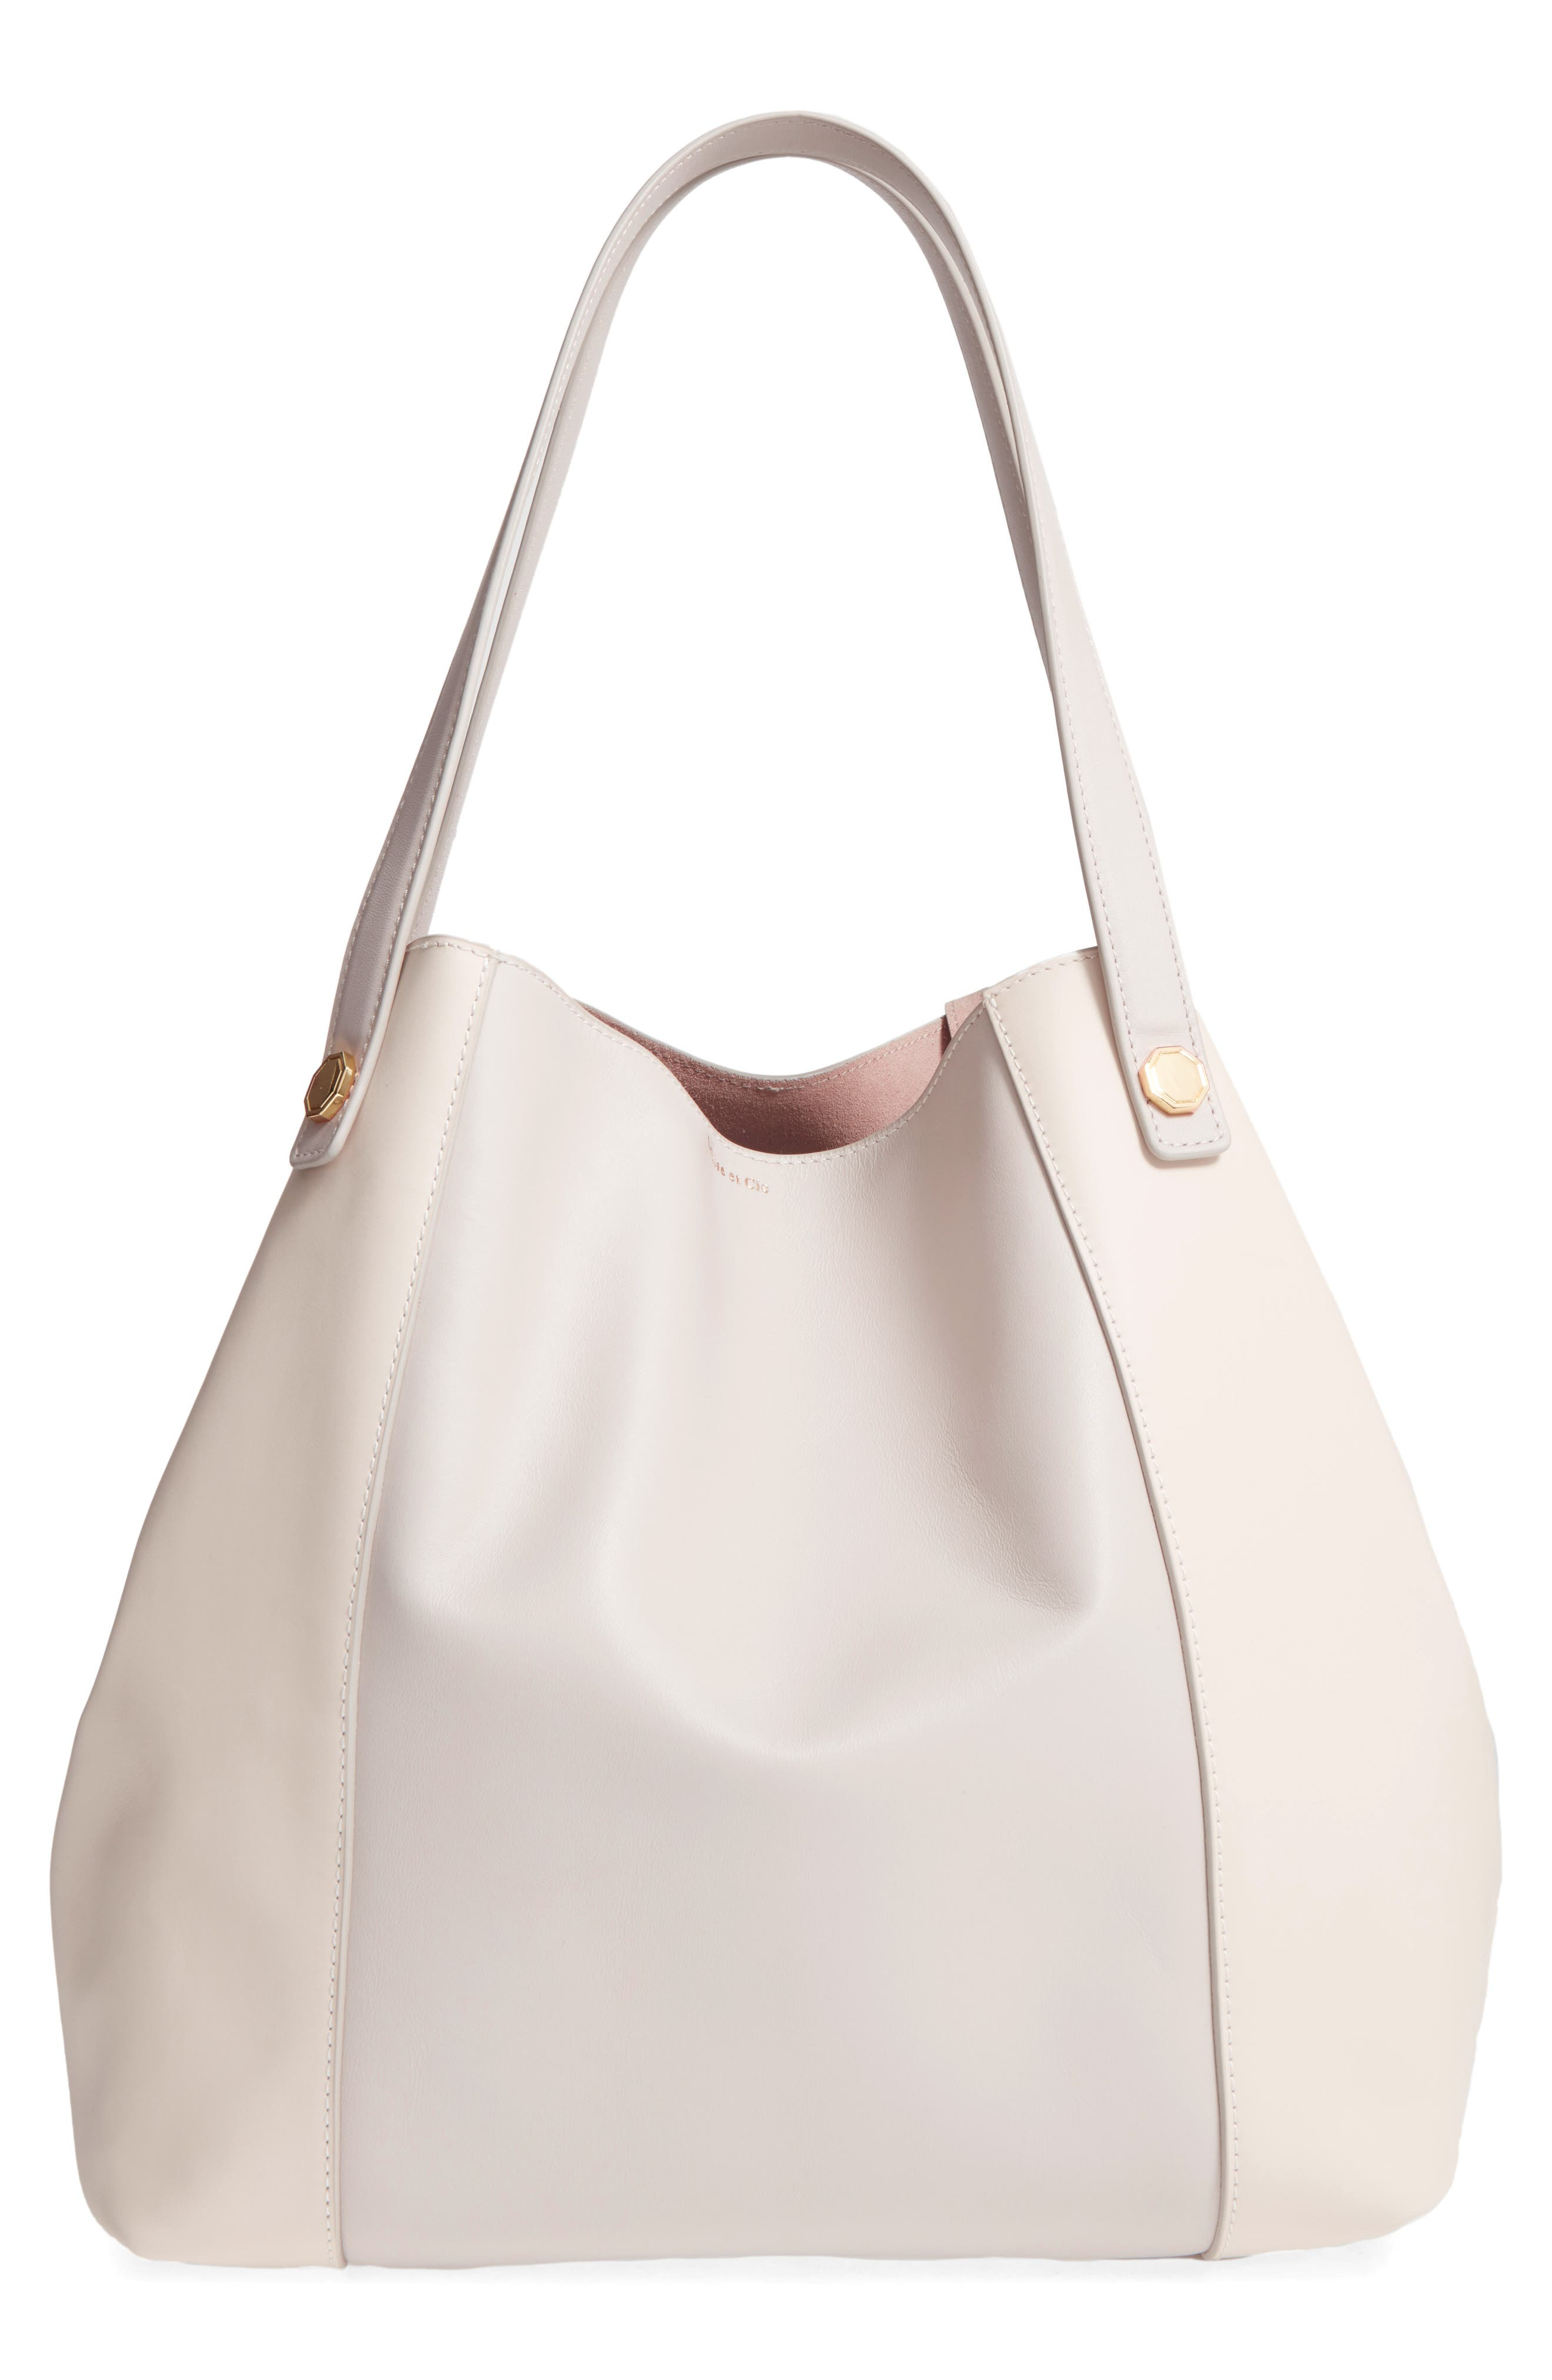 Alternate Image 1 Selected - Louise et Cie Maree Leather Tote